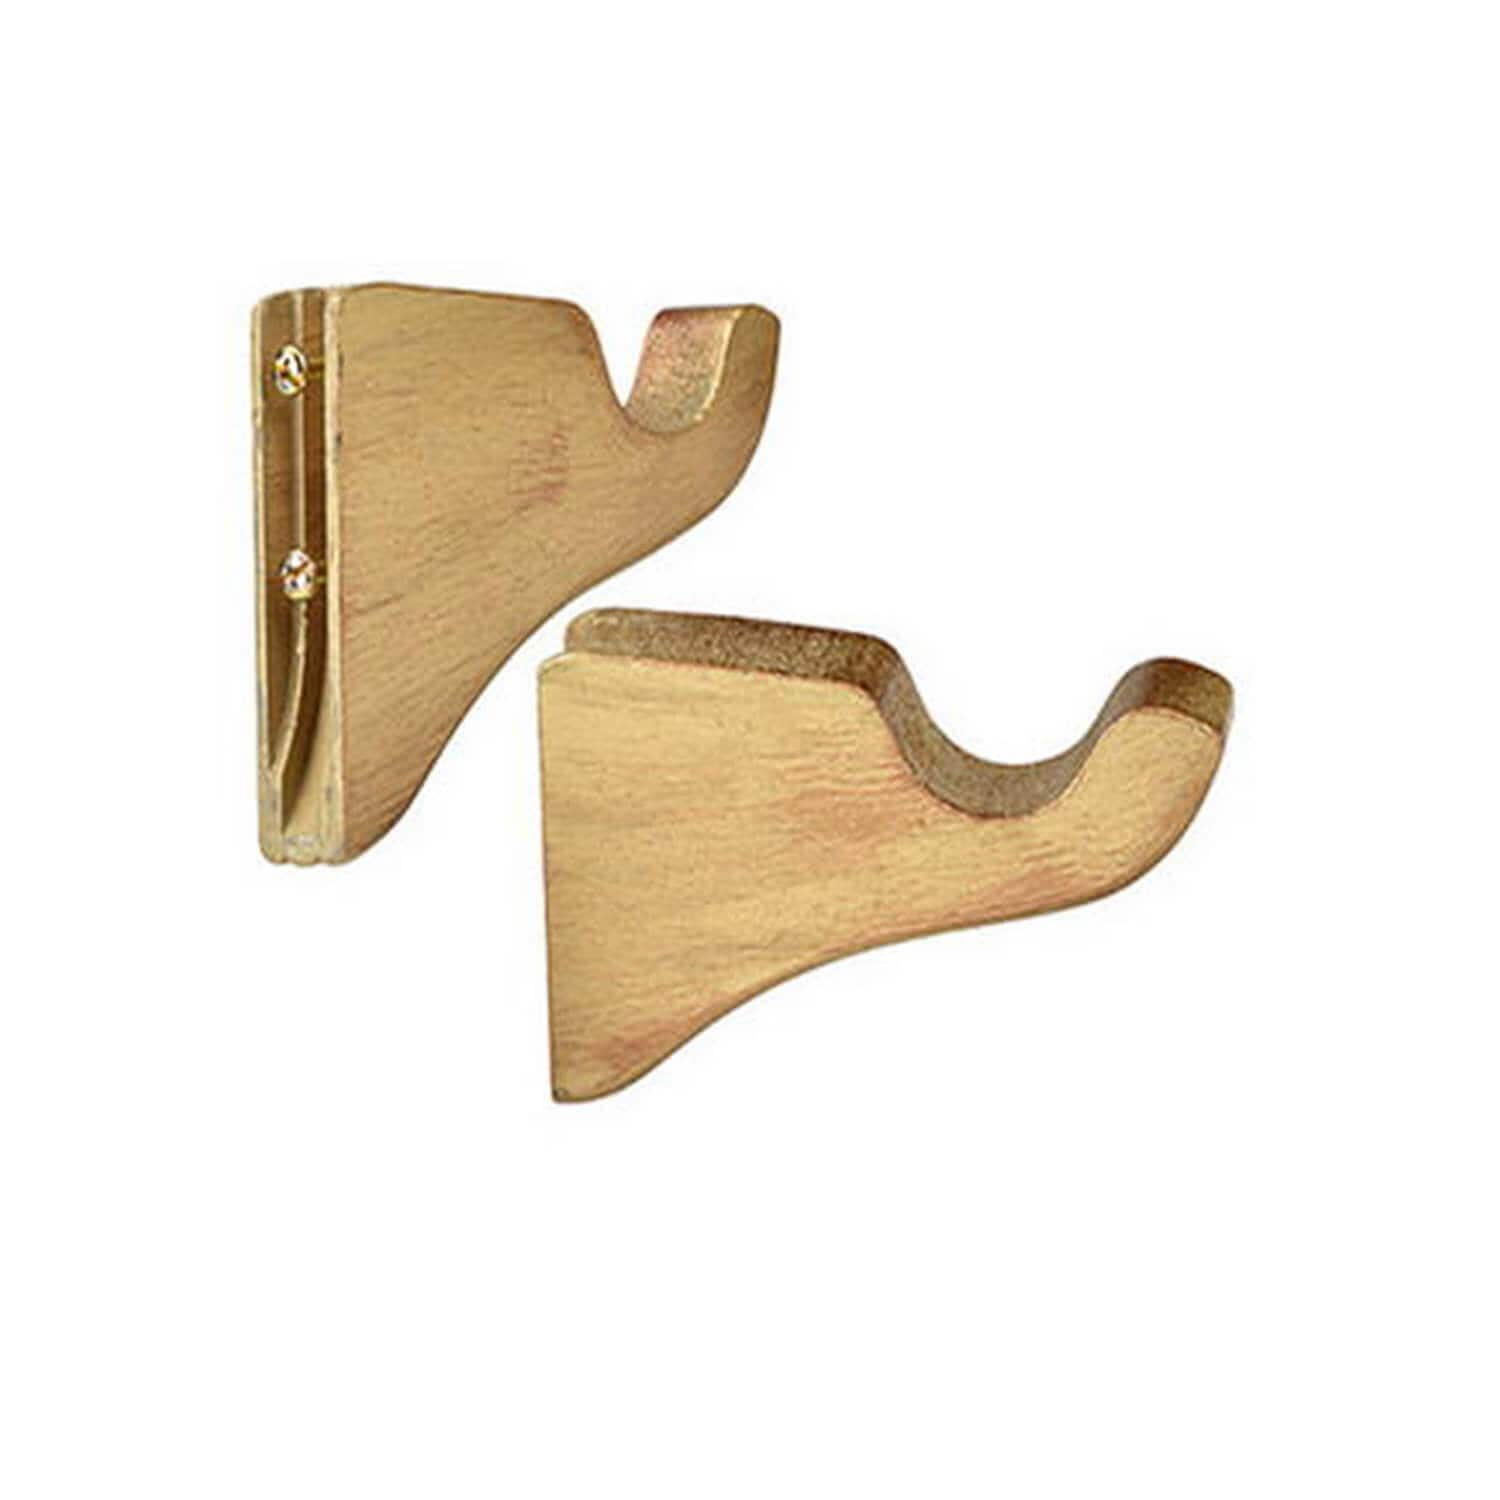 Wooden Brackets (Sold As Pair)